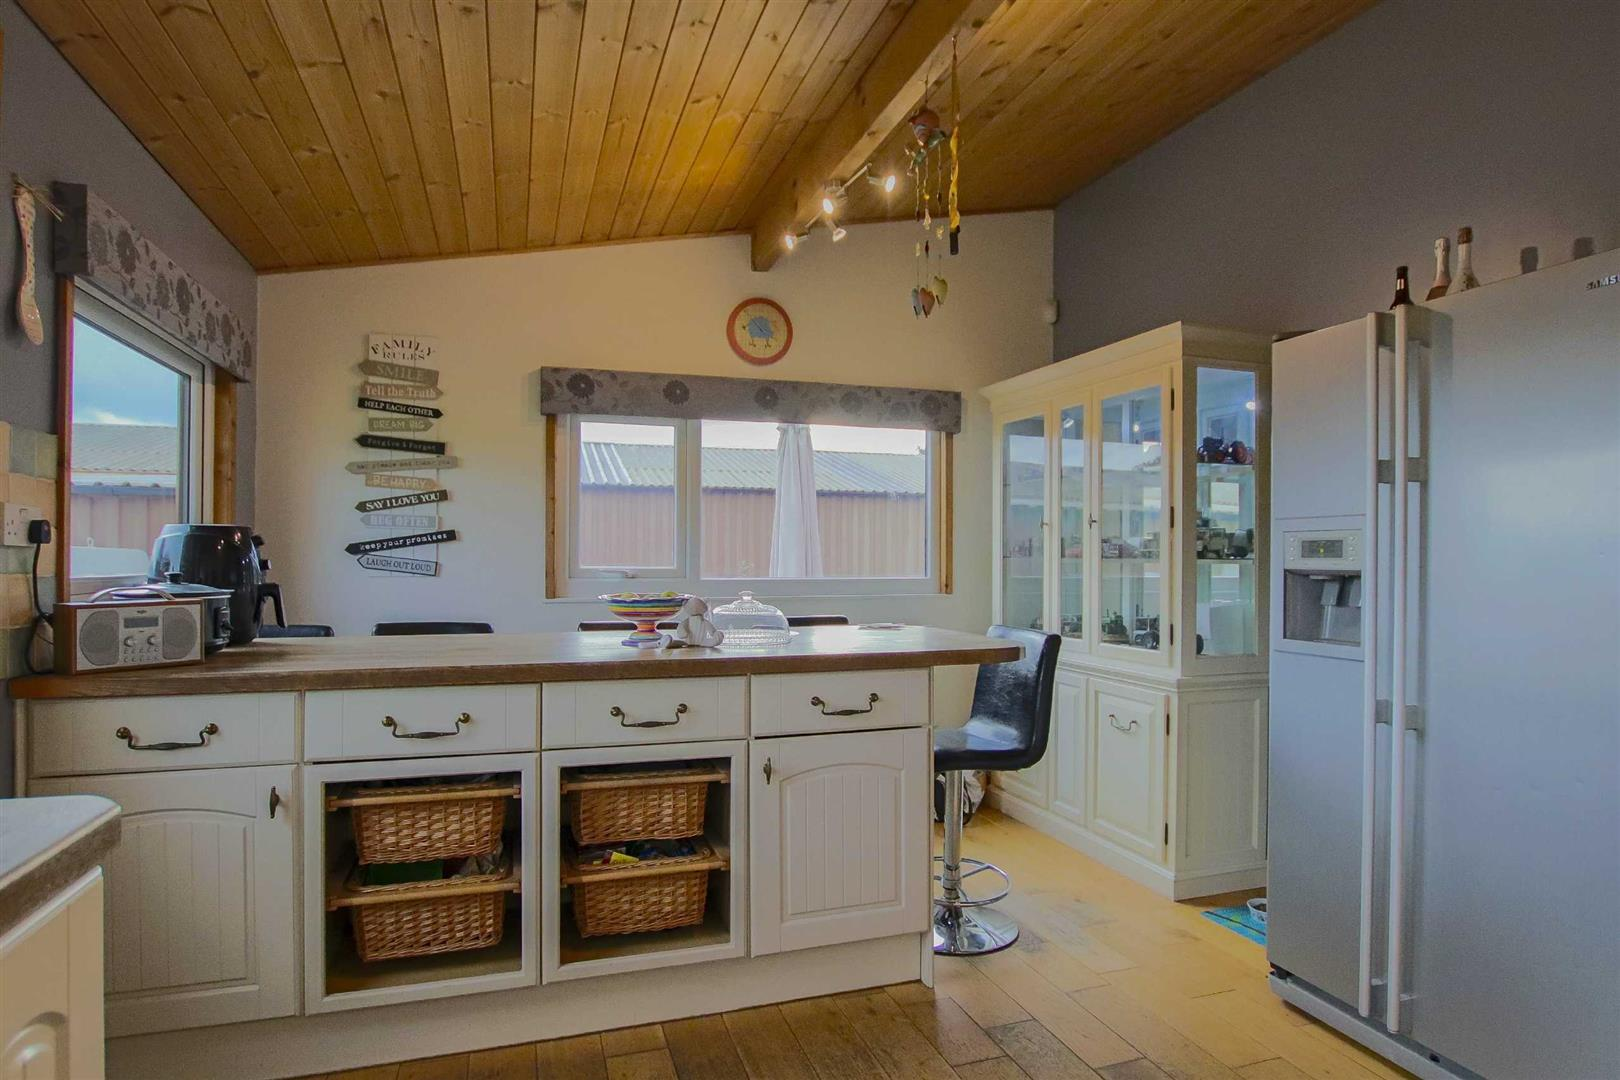 9 Bedroom Barn Conversion For Sale - Image 32